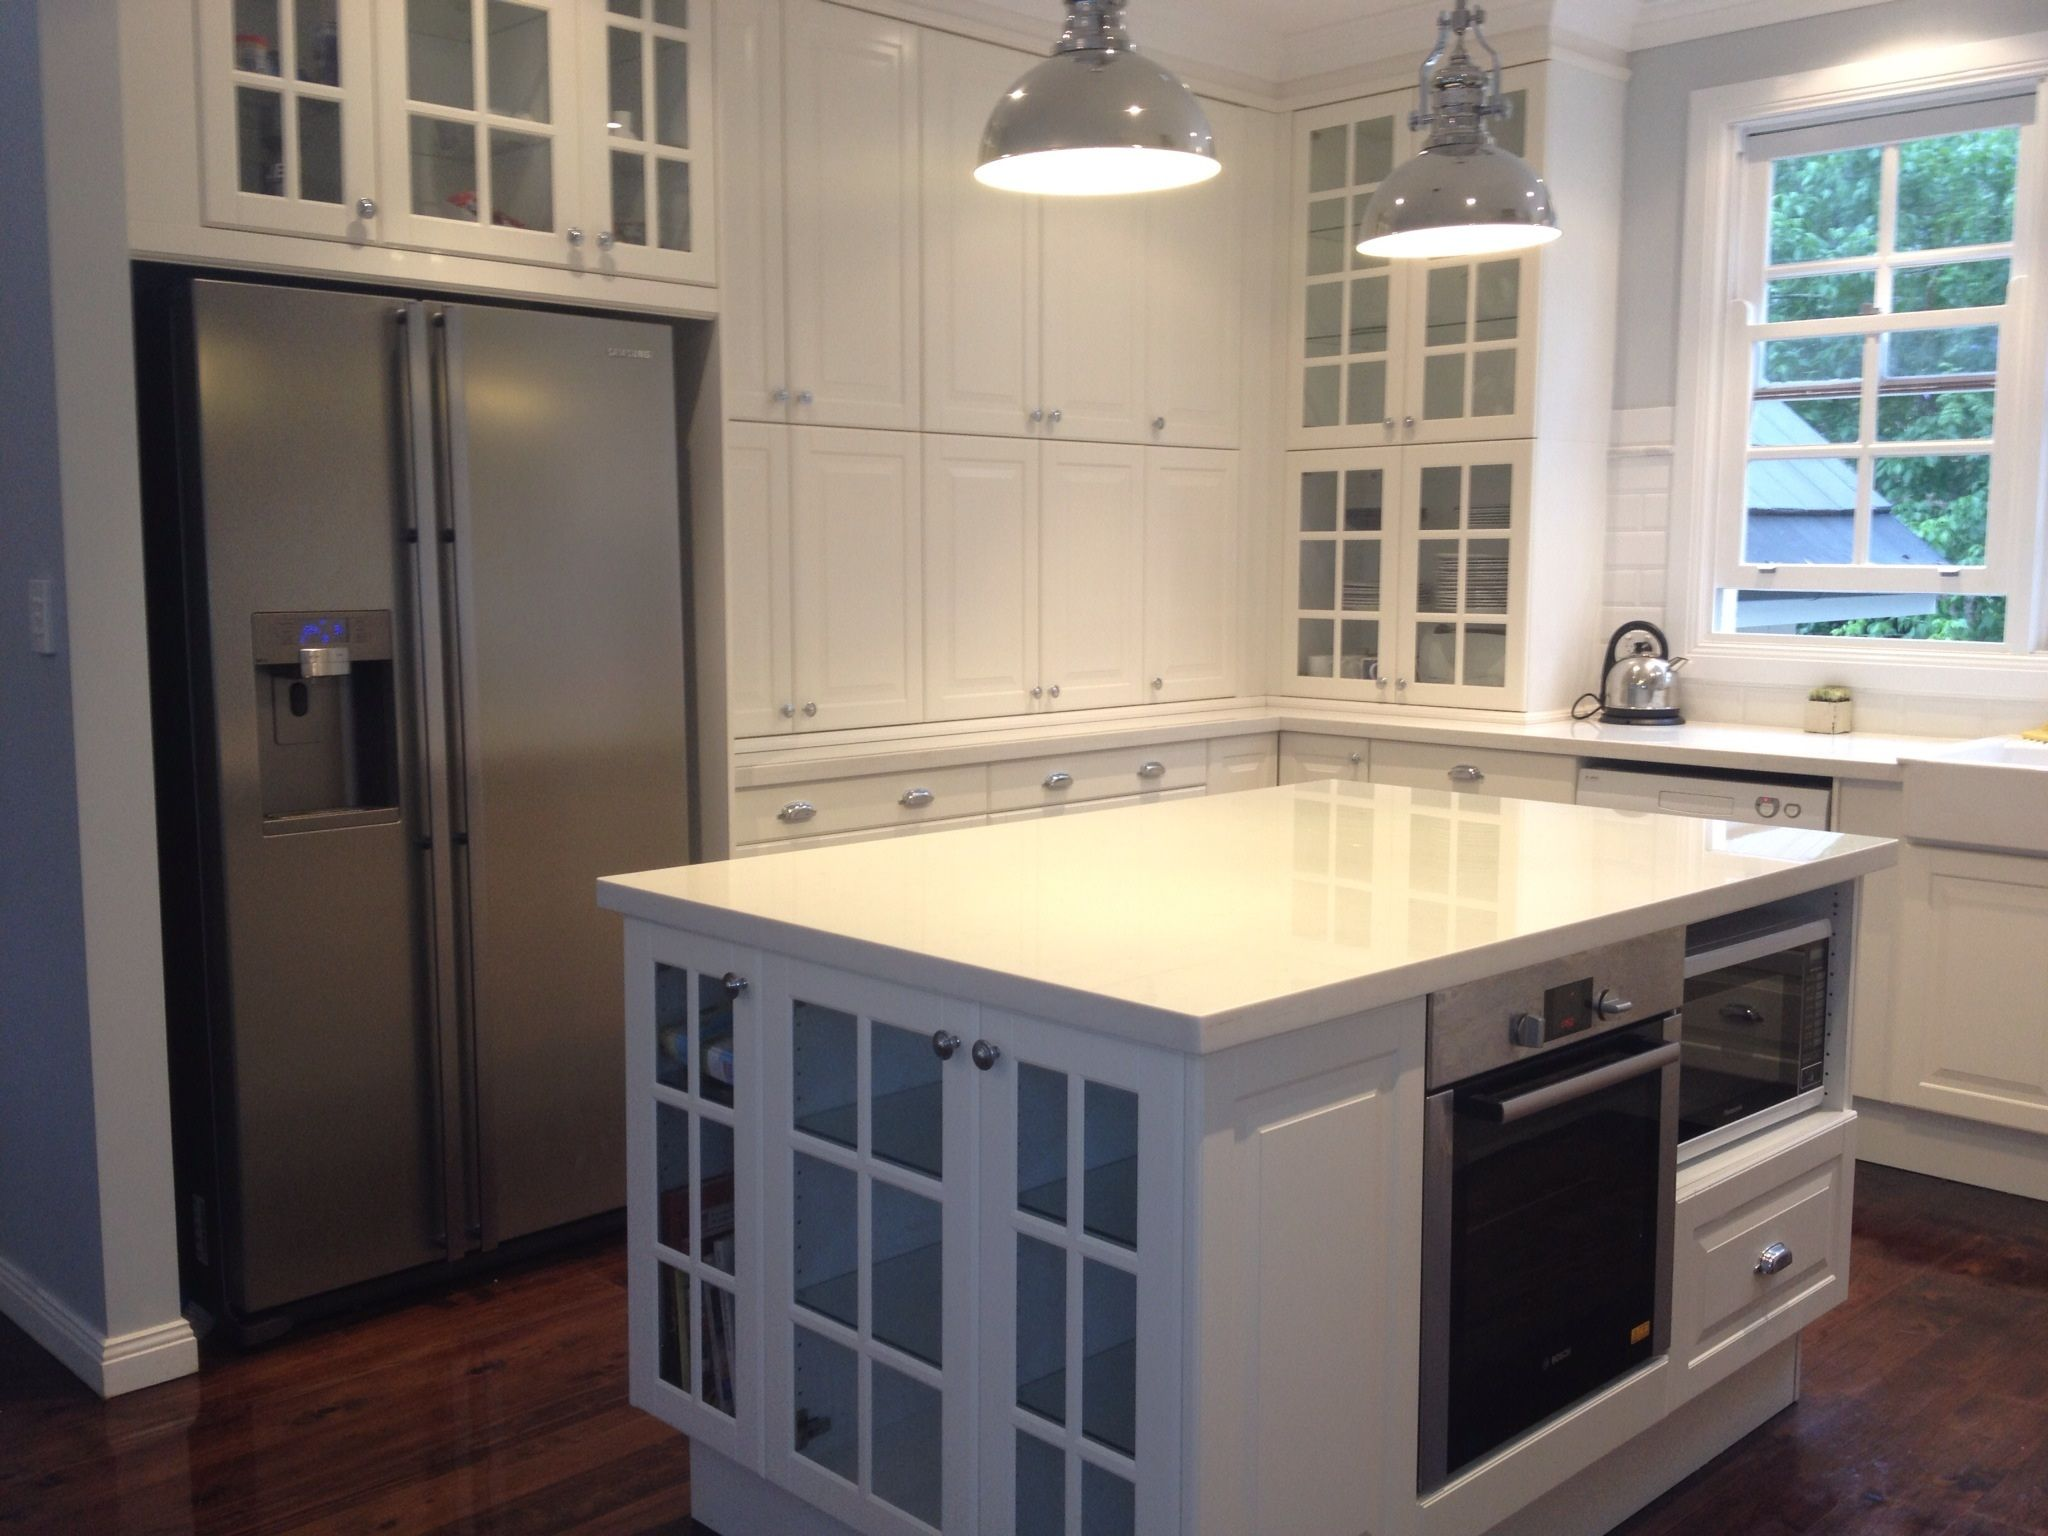 Merveilleux Tremendous Remodel White Gloss Acrylic Built In Ikea Kitchen Cabinets Ideas  Added White Large Kitchen Island